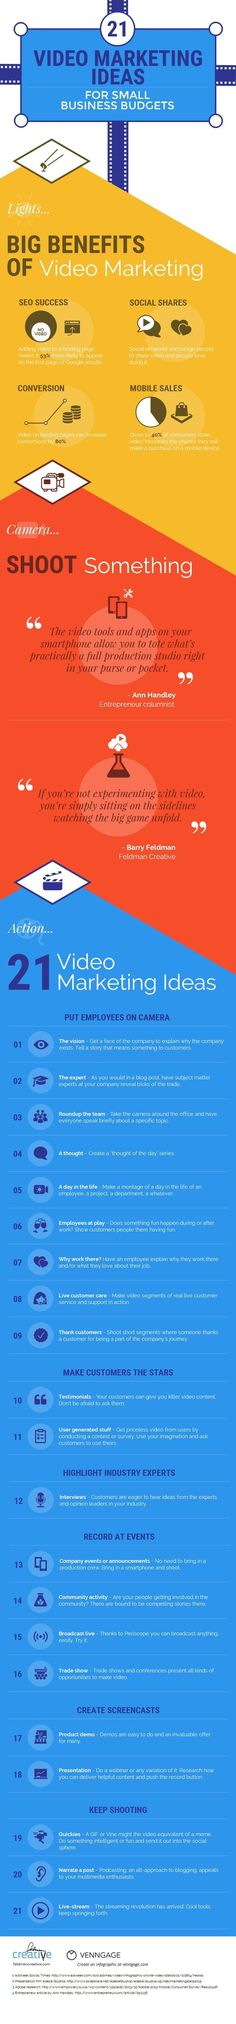 Infografik – Video Marketing Ideas For Small Budgets by Venngage